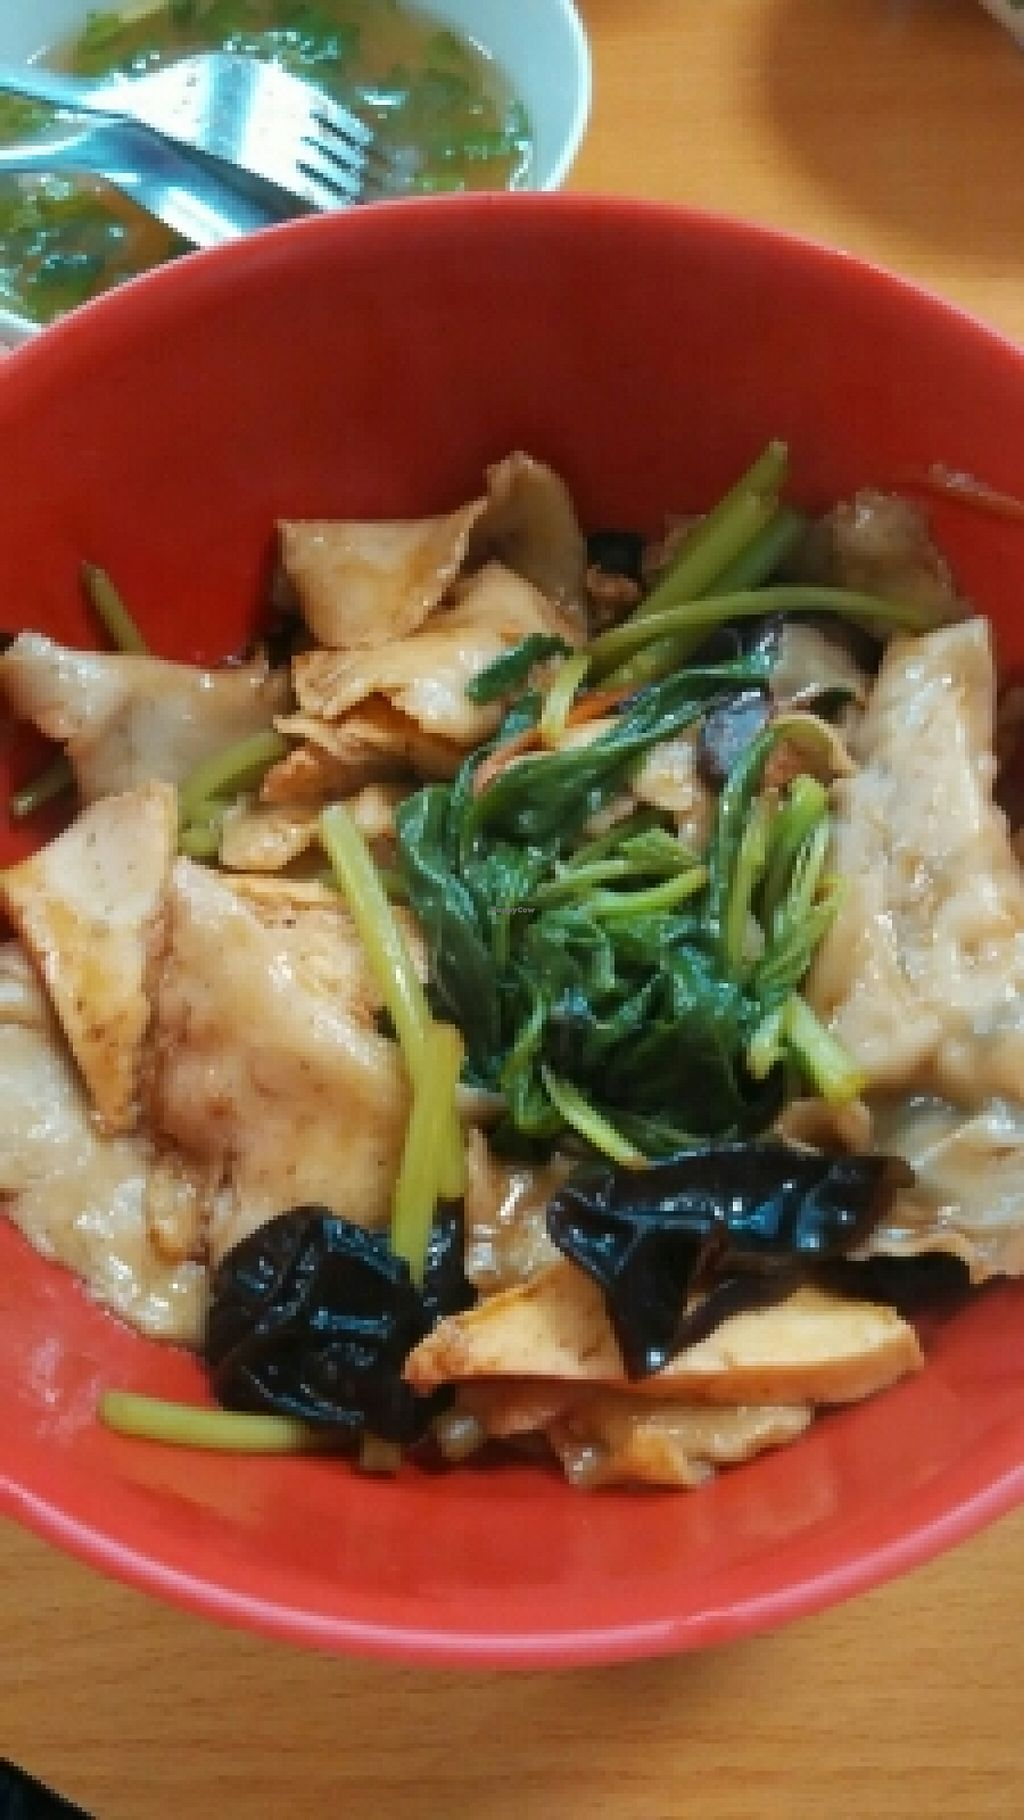 """Photo of Tian Yuan Vegetarian Food  by <a href=""""/members/profile/JimmySeah"""">JimmySeah</a> <br/>Dried mee hoon kway (made from flour) <br/> January 18, 2016  - <a href='/contact/abuse/image/21134/132861'>Report</a>"""